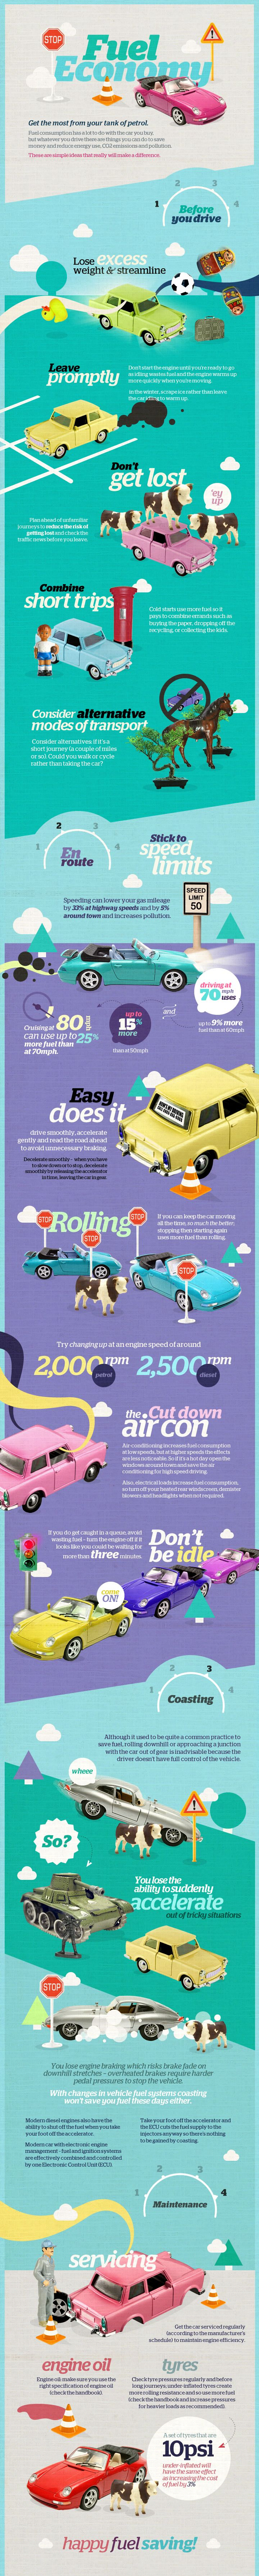 Better Fuel Economy Tips Infographic